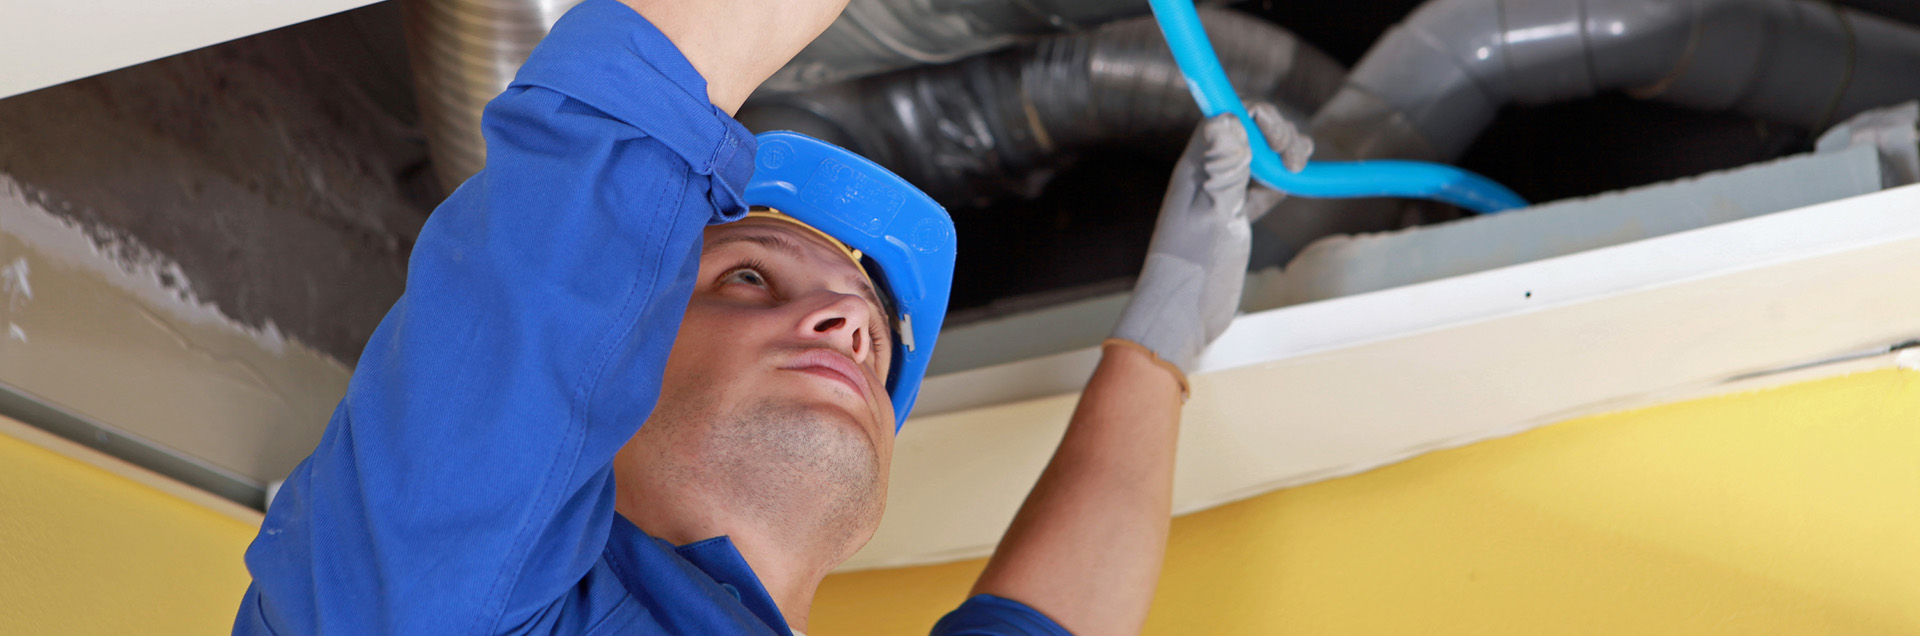 Installations and Servicing<br />Cooling, Heating and Ventilation